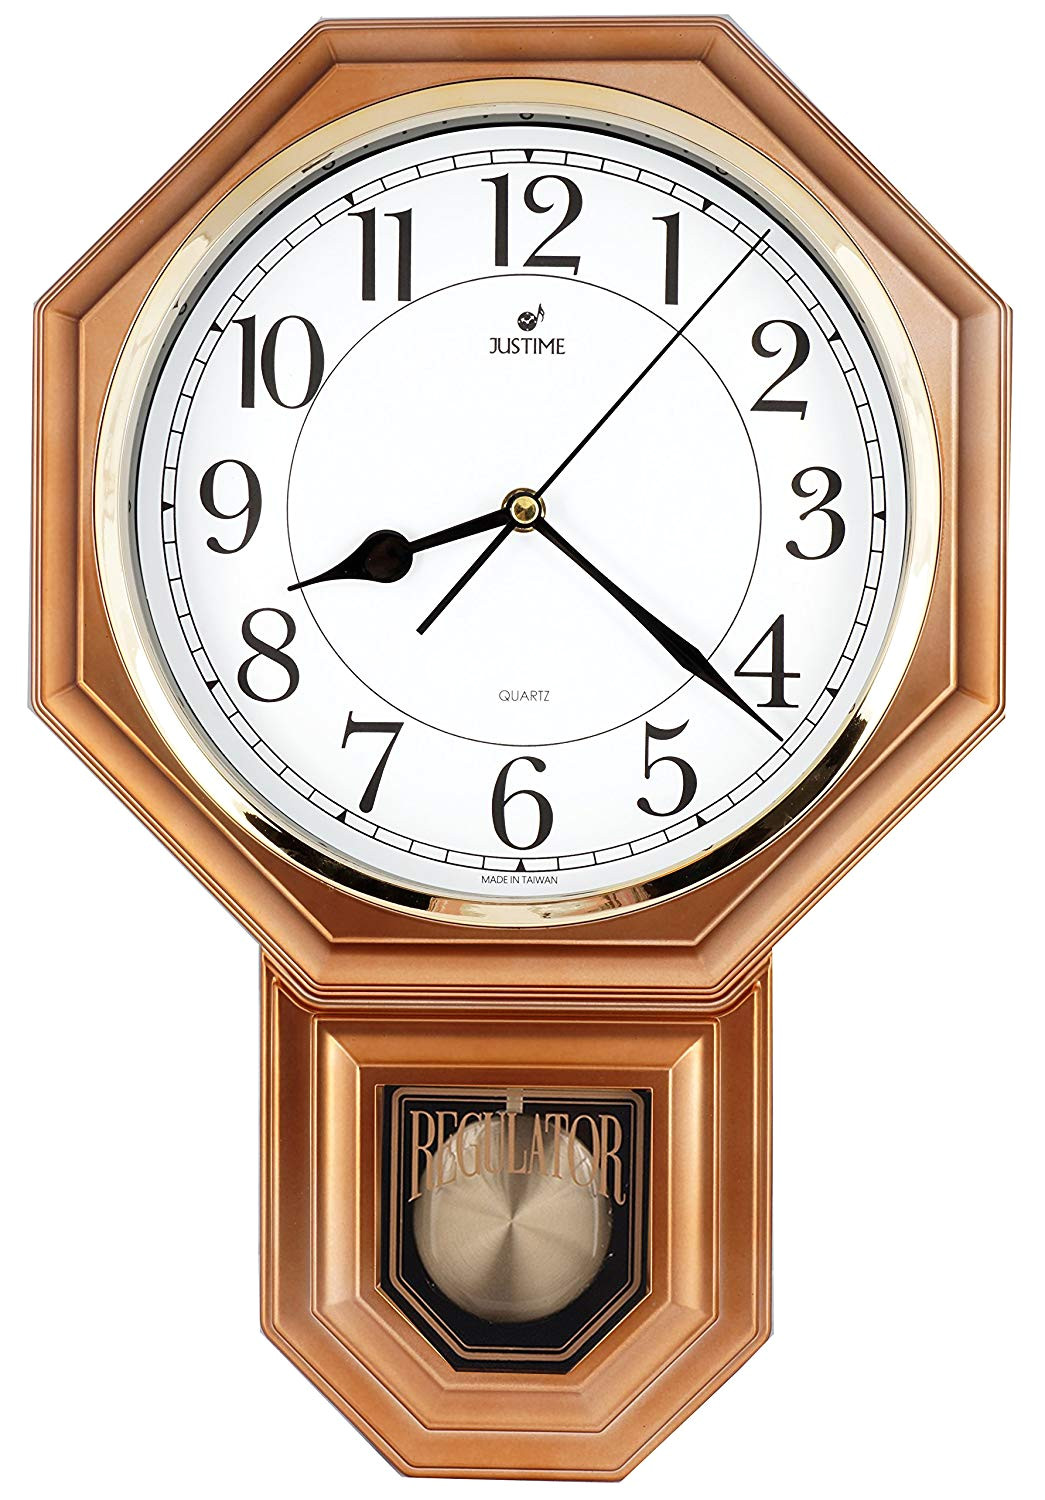 amazon com hot selling traditional schoolhouse pendulum wall clock chimes every hour with westminster melody made in taiwan 4aa batteries included